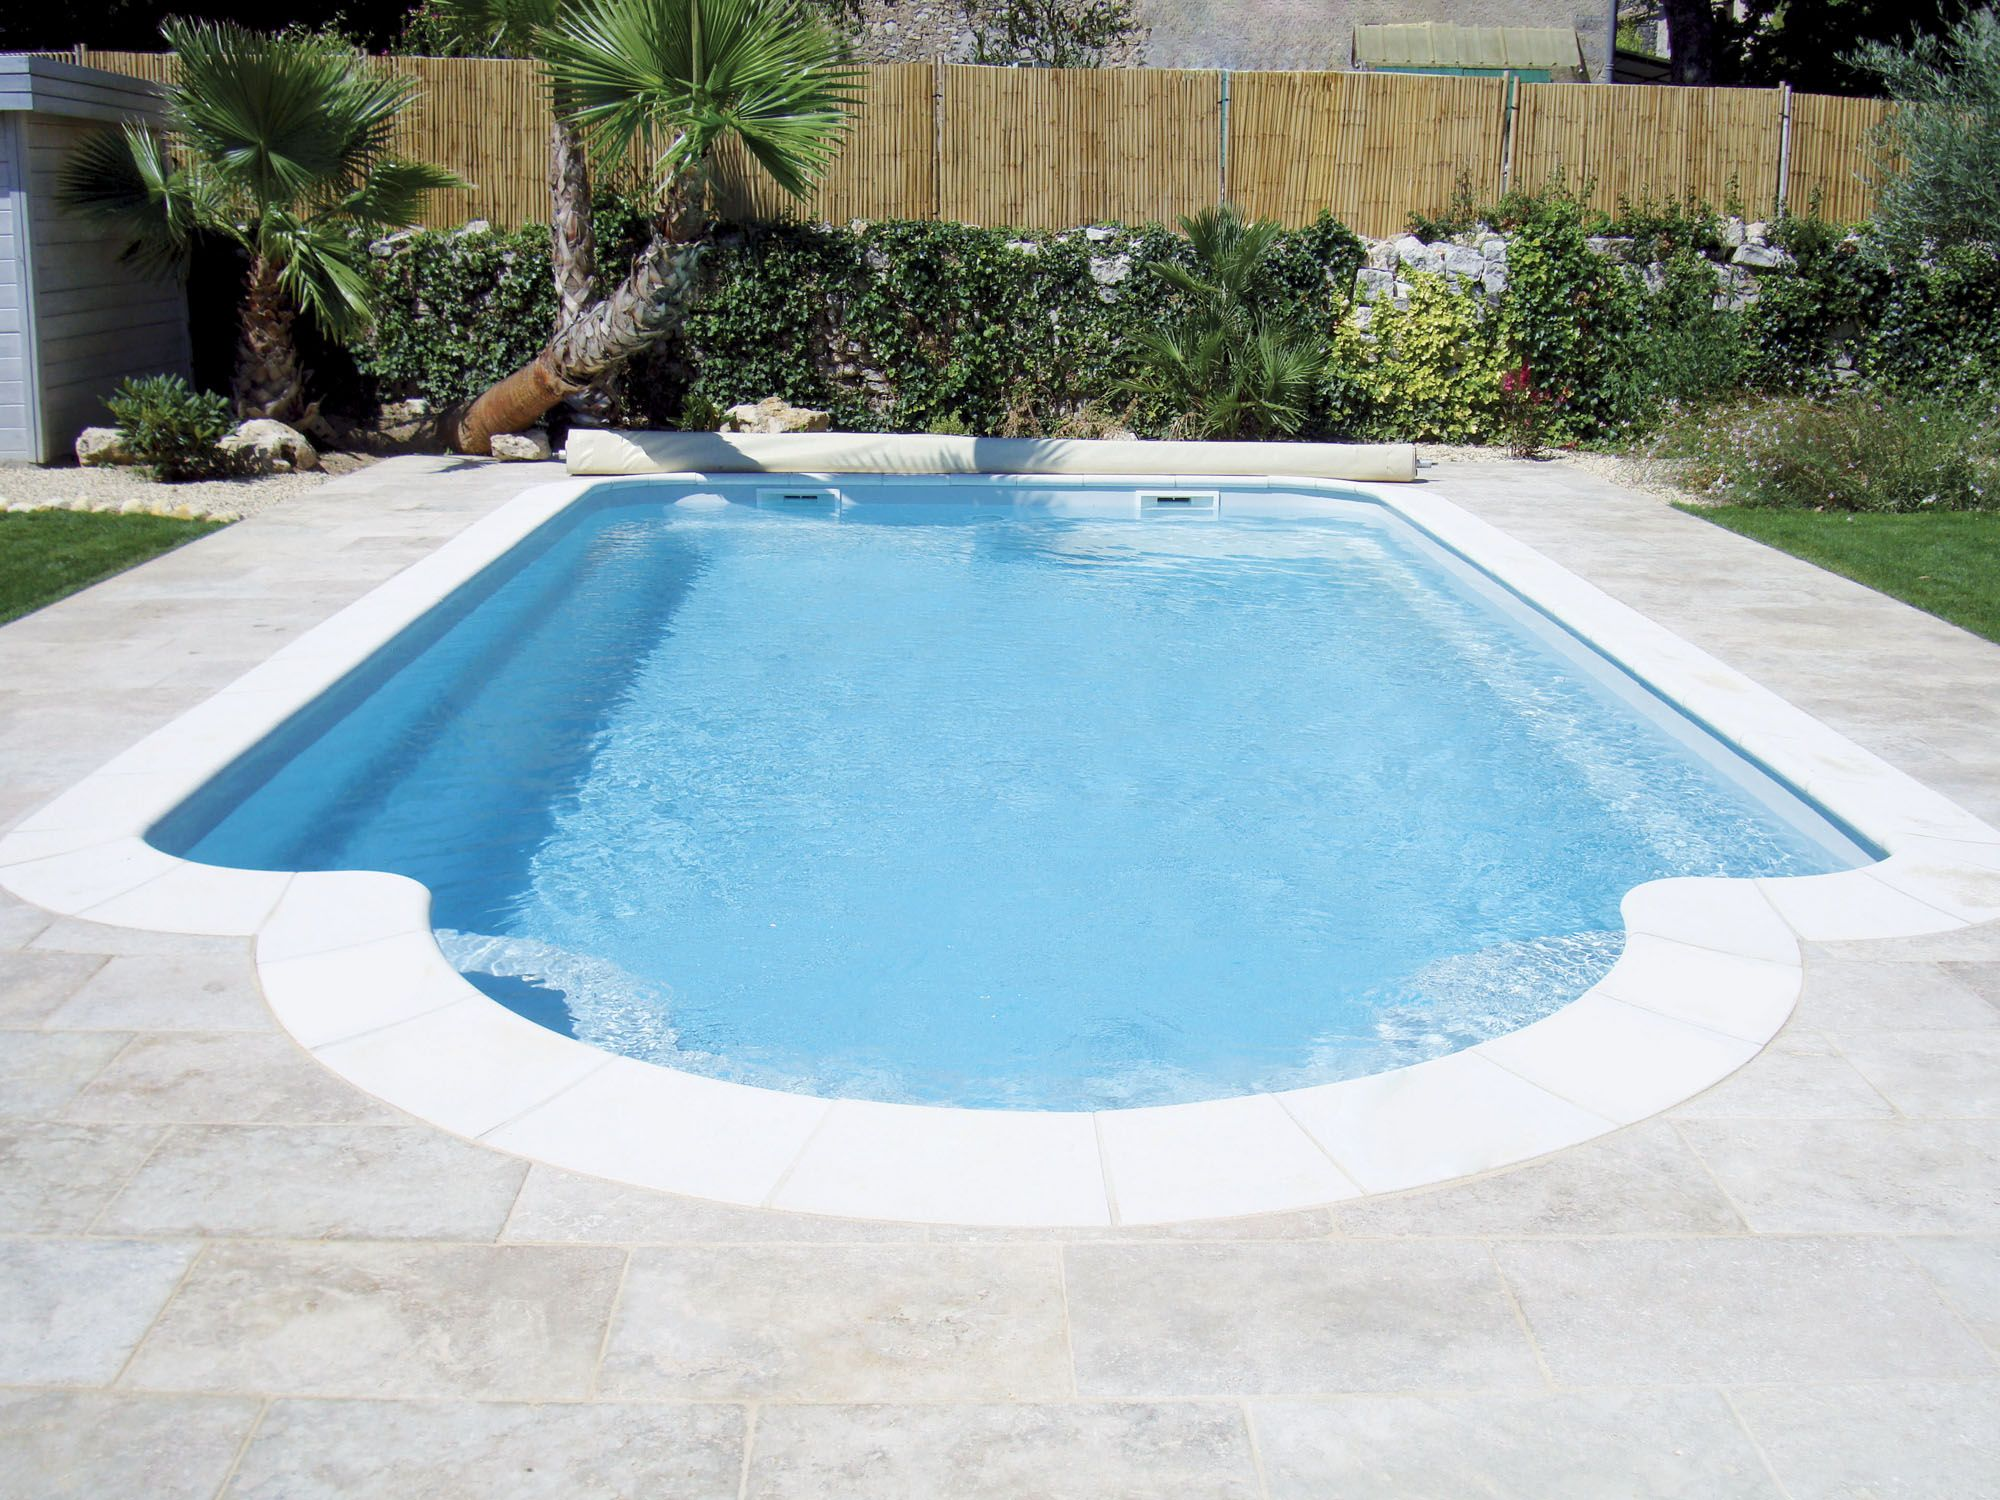 Piscine coque polyester arp ge fabrication fran aise for Piscine provence polyester